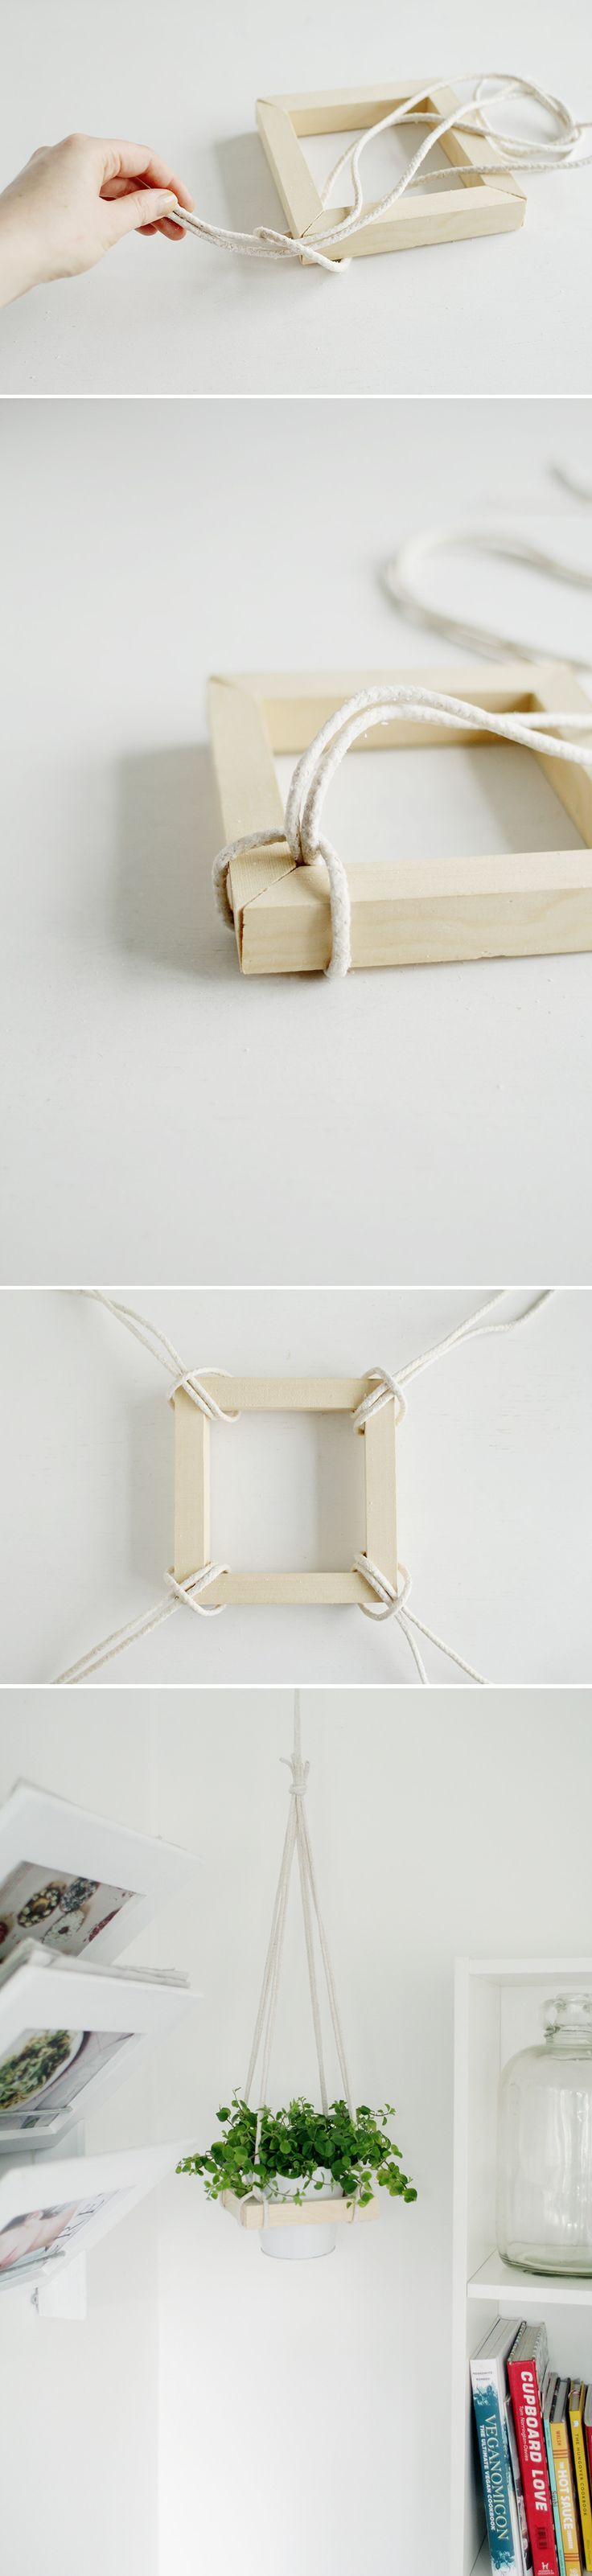 DIY Square Hanging Planter | Fall For DIY